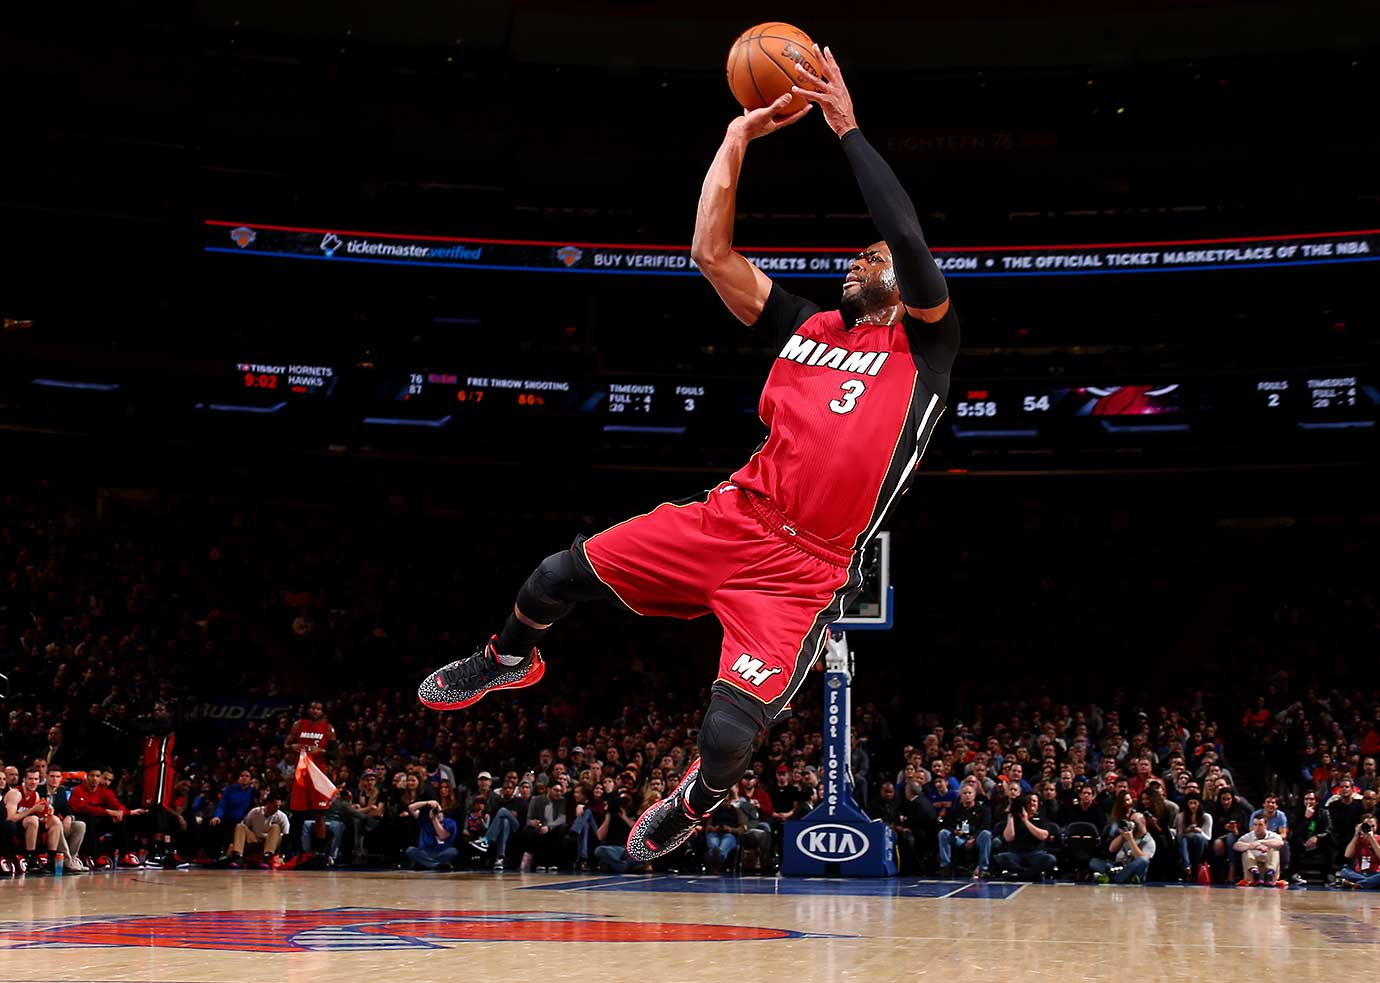 Which was the stranger sight, this shot by Dwyane Wade or the outfit he arrived in for Sunday's game?